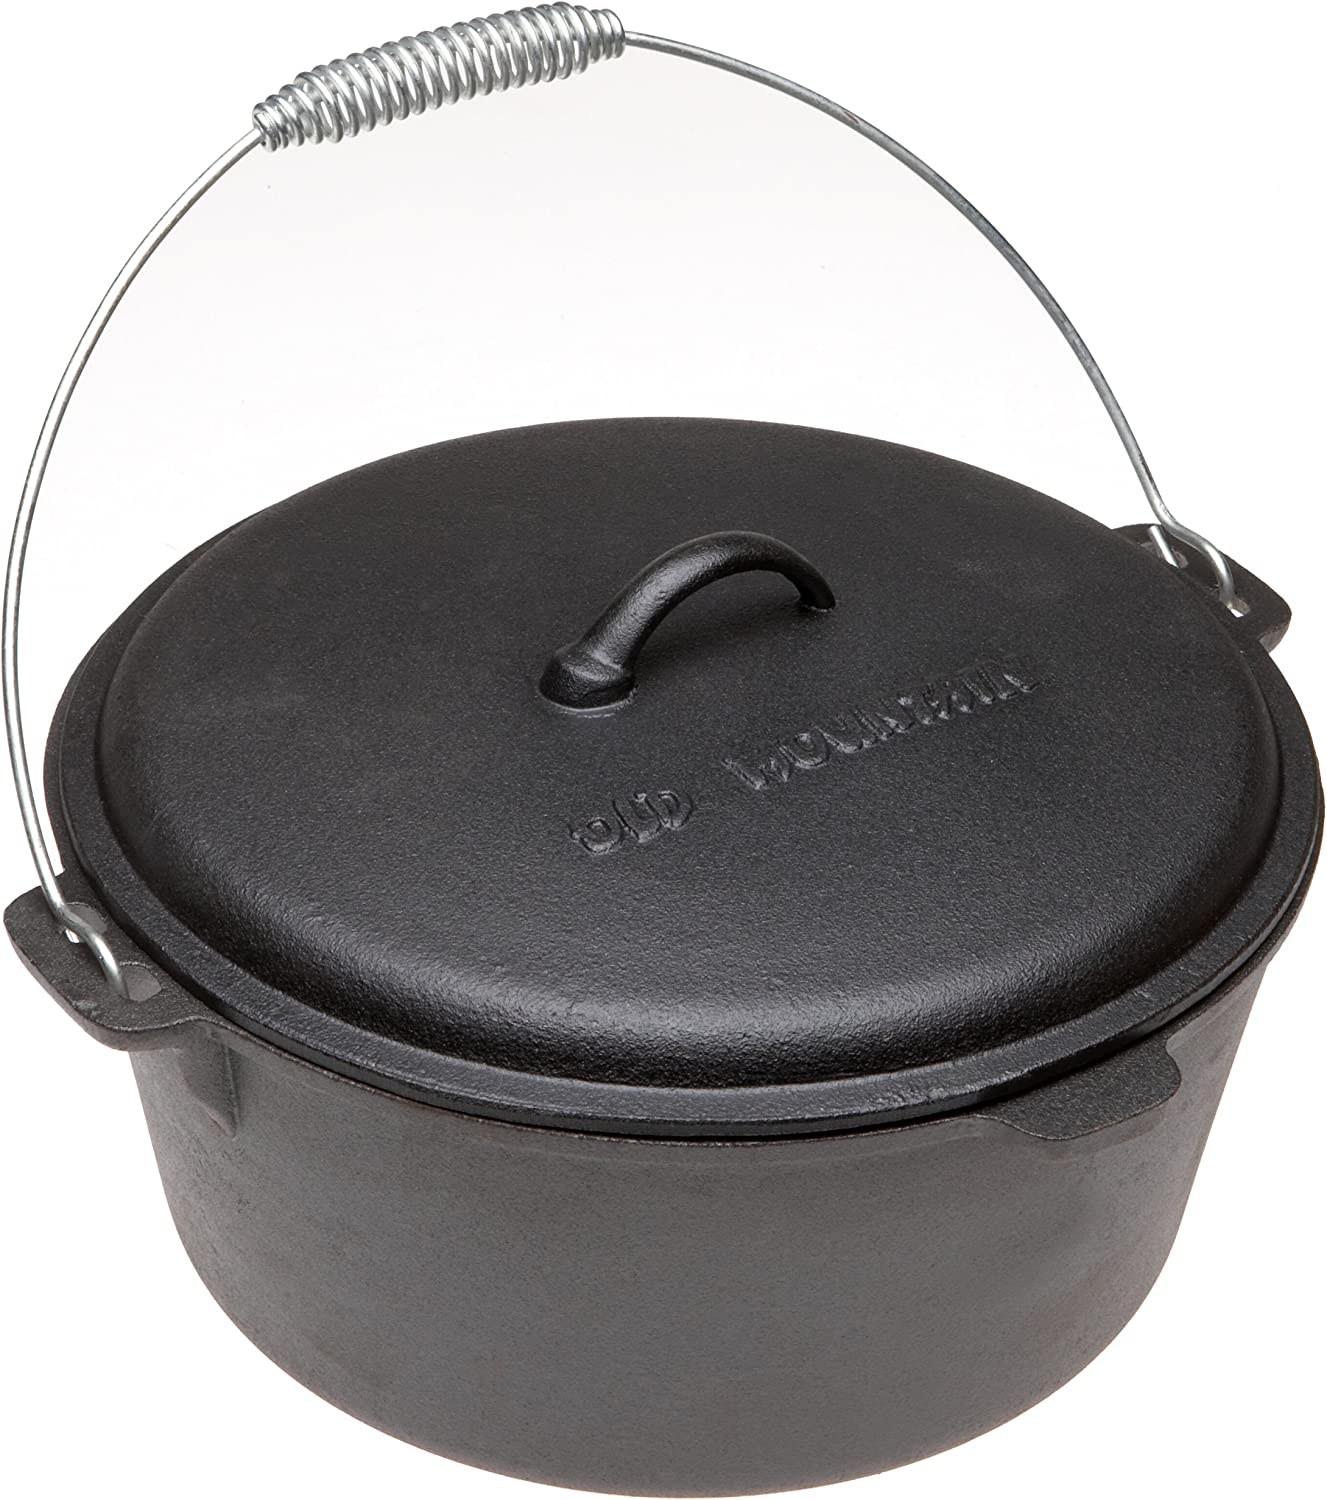 Old Mountain Pre Seasoned 10112 8 Quart Dutch Oven with Dome Lid and Spiral Bail Handle